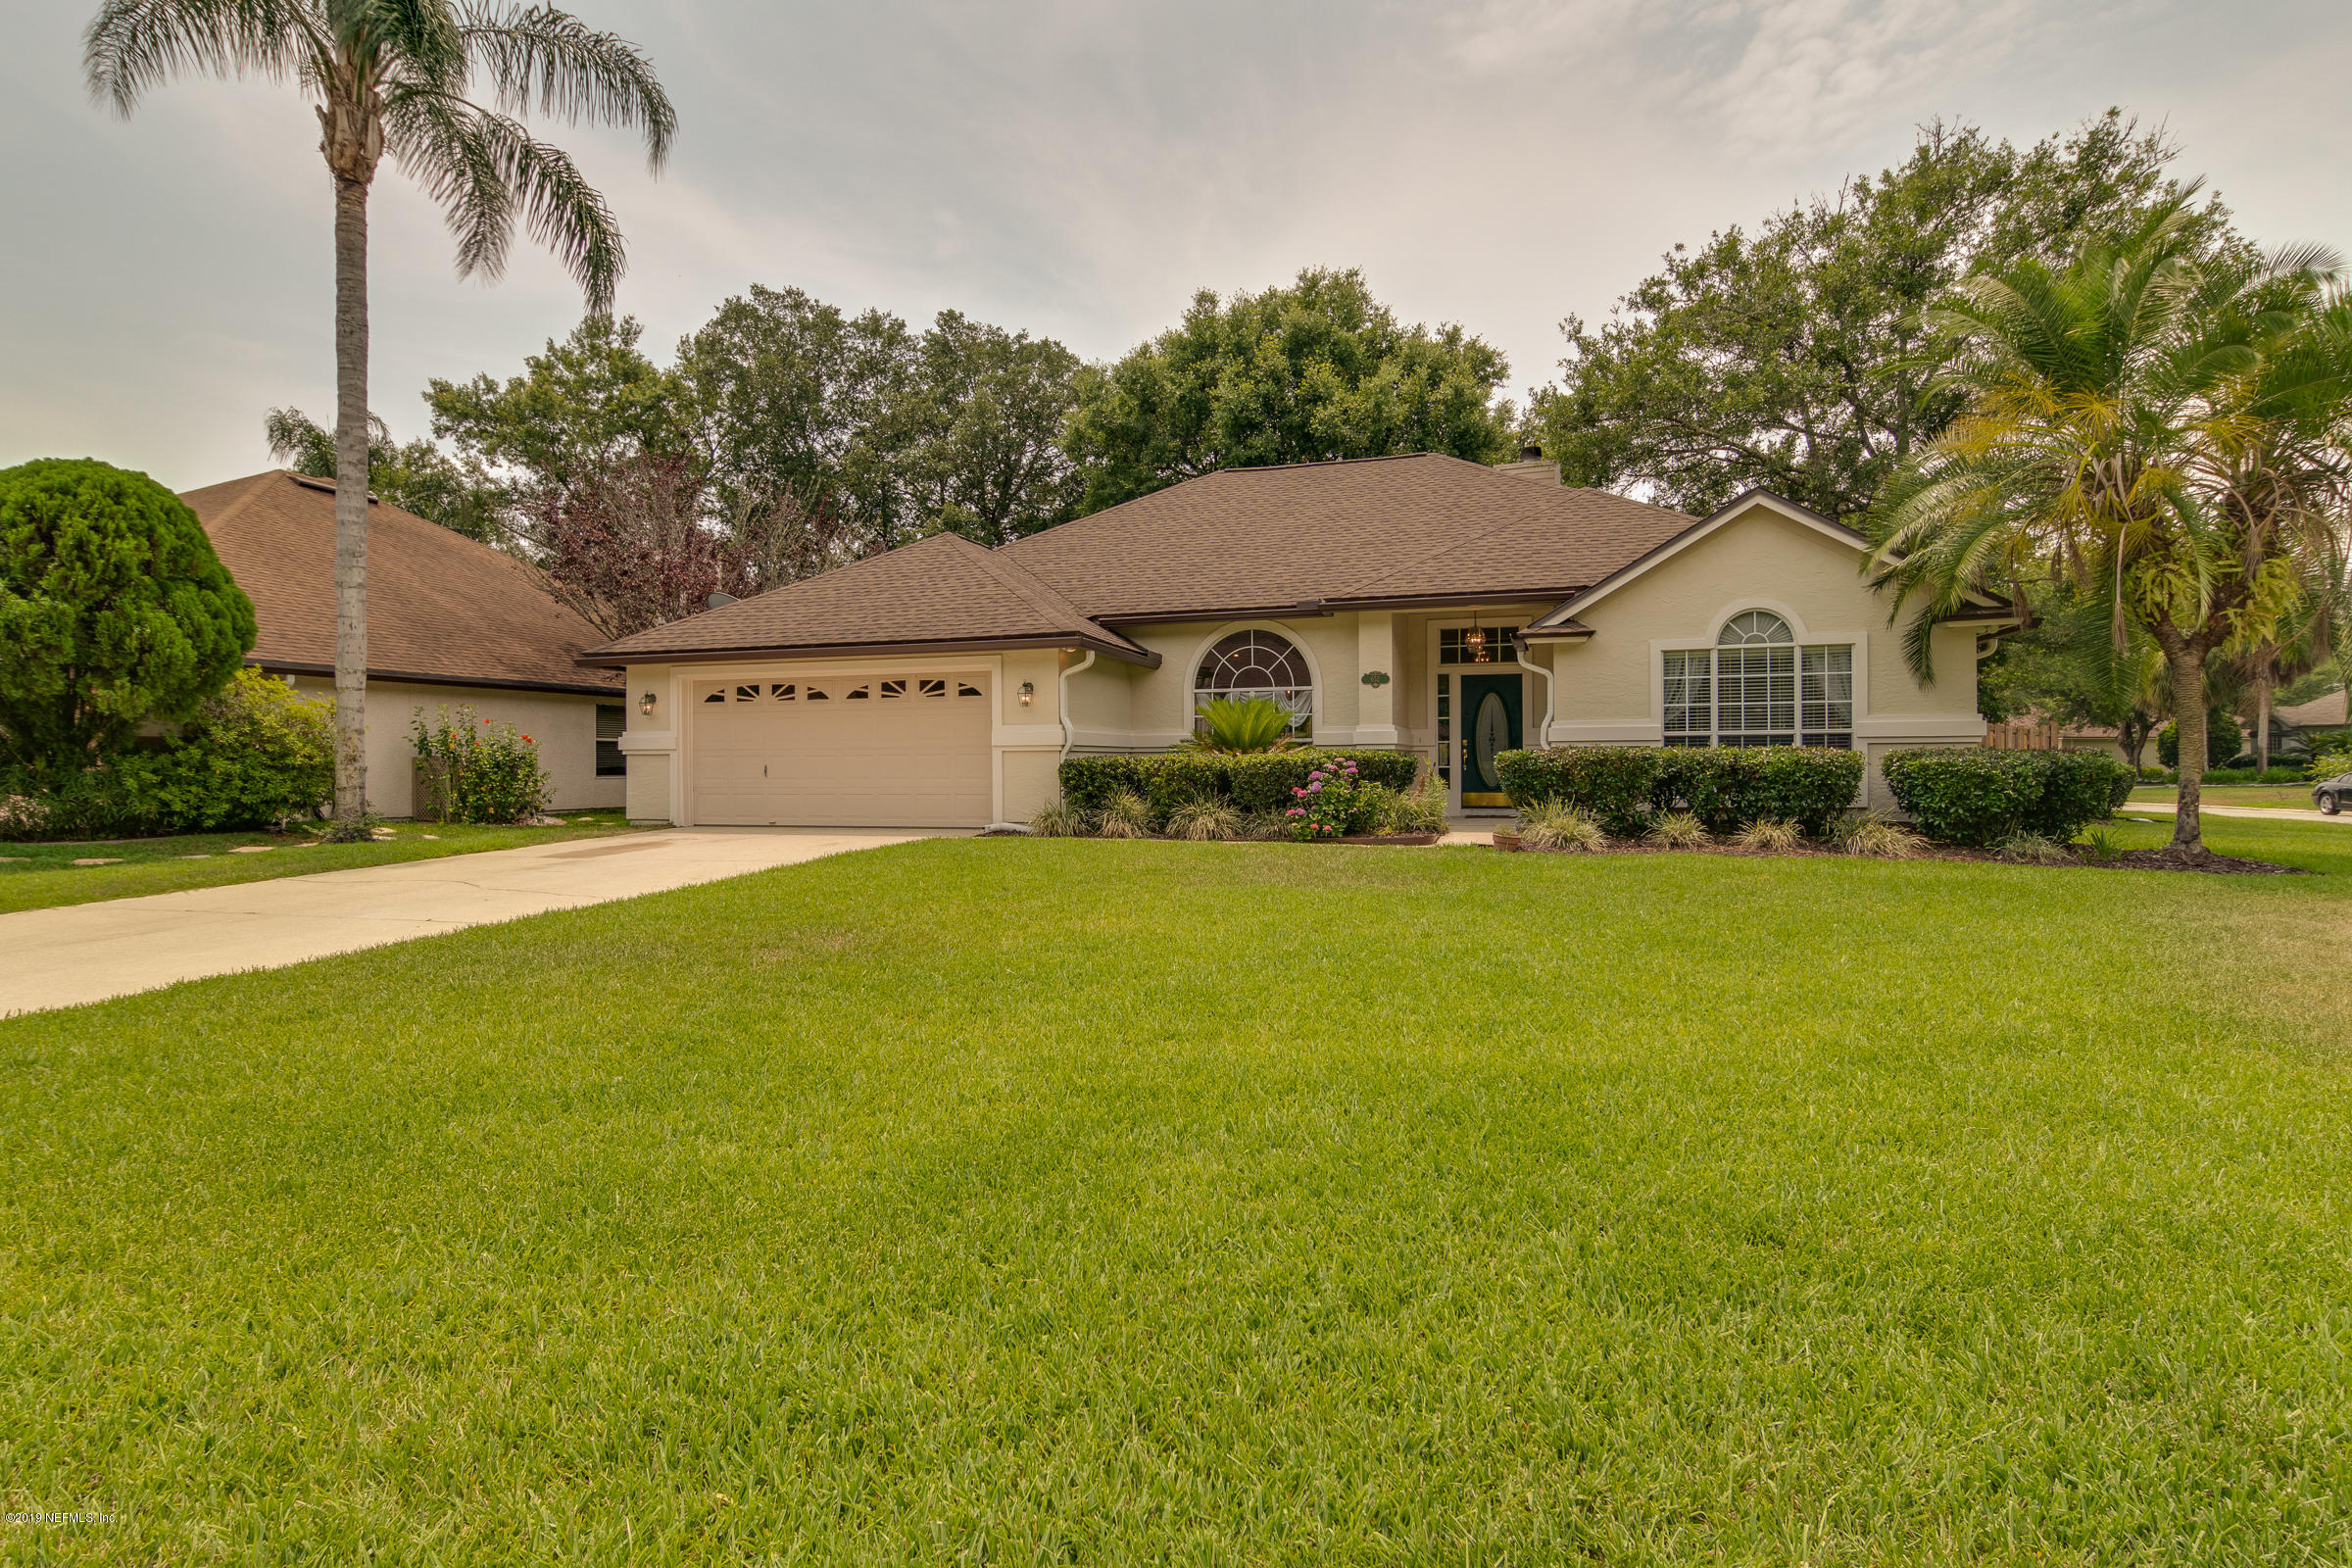 652 BOX BRANCH, ST JOHNS, FLORIDA 32259, 4 Bedrooms Bedrooms, ,2 BathroomsBathrooms,Residential - single family,For sale,BOX BRANCH,997794